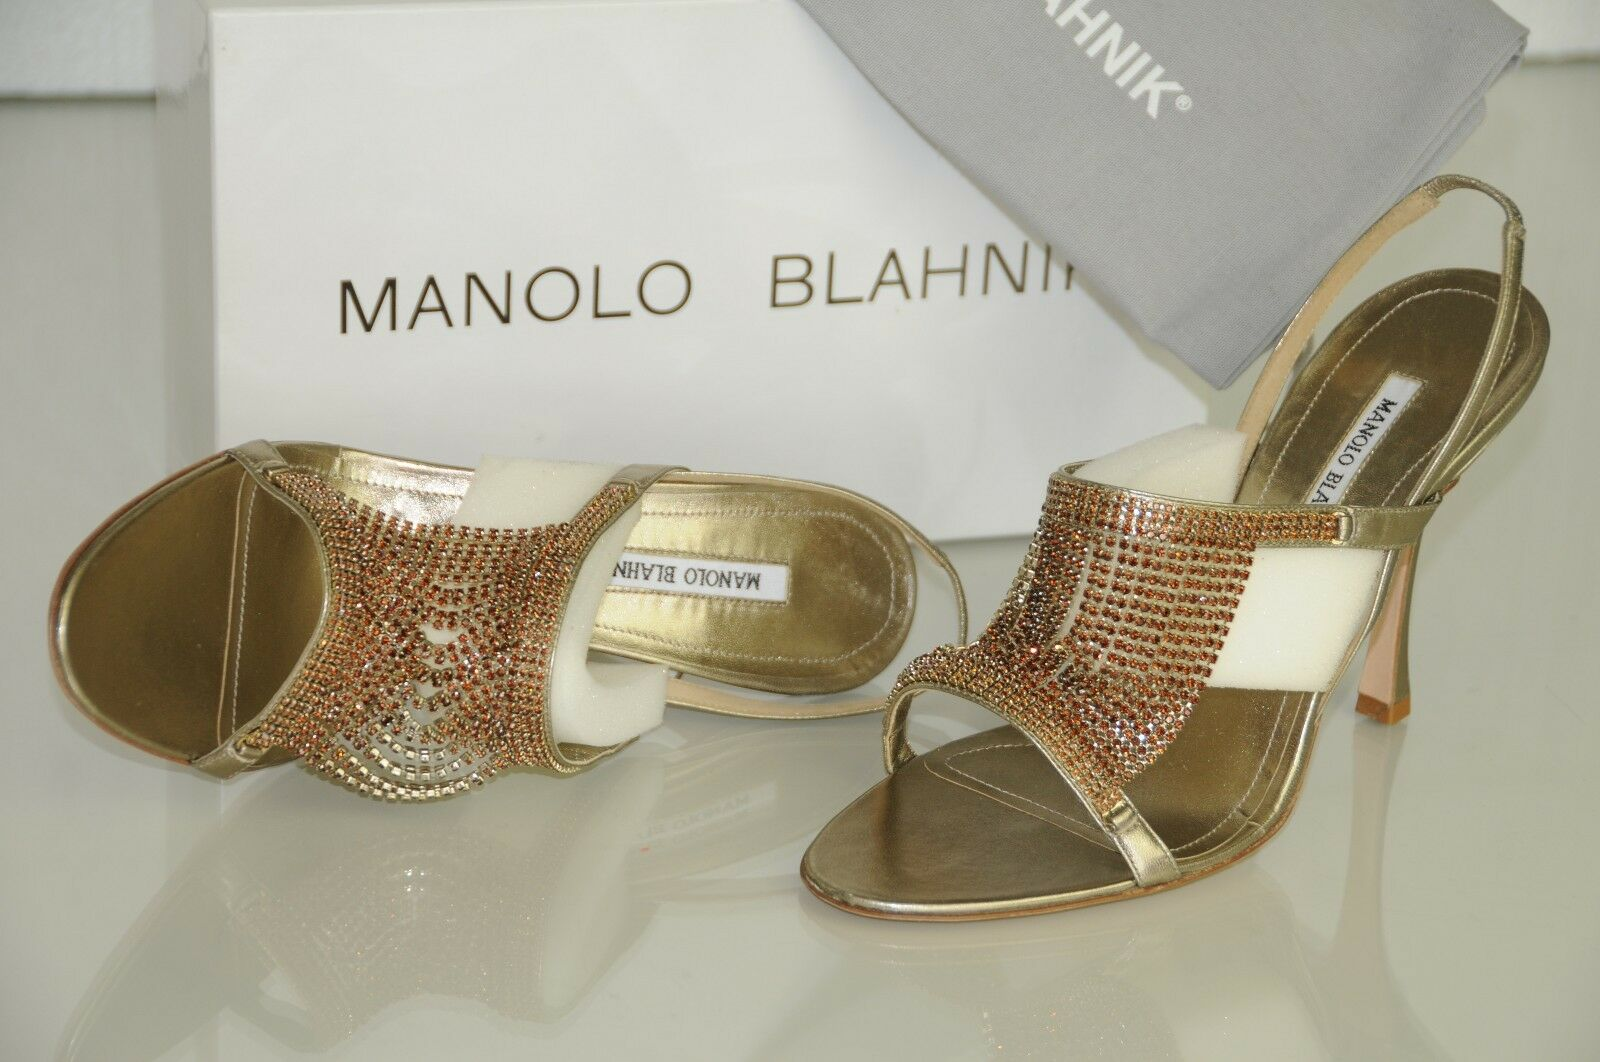 New Manolo Manolo Manolo Blahnik Fringestro Gold Crystal Jeweled Sandals schuhe 40 40.5 Wedding a1ba6a